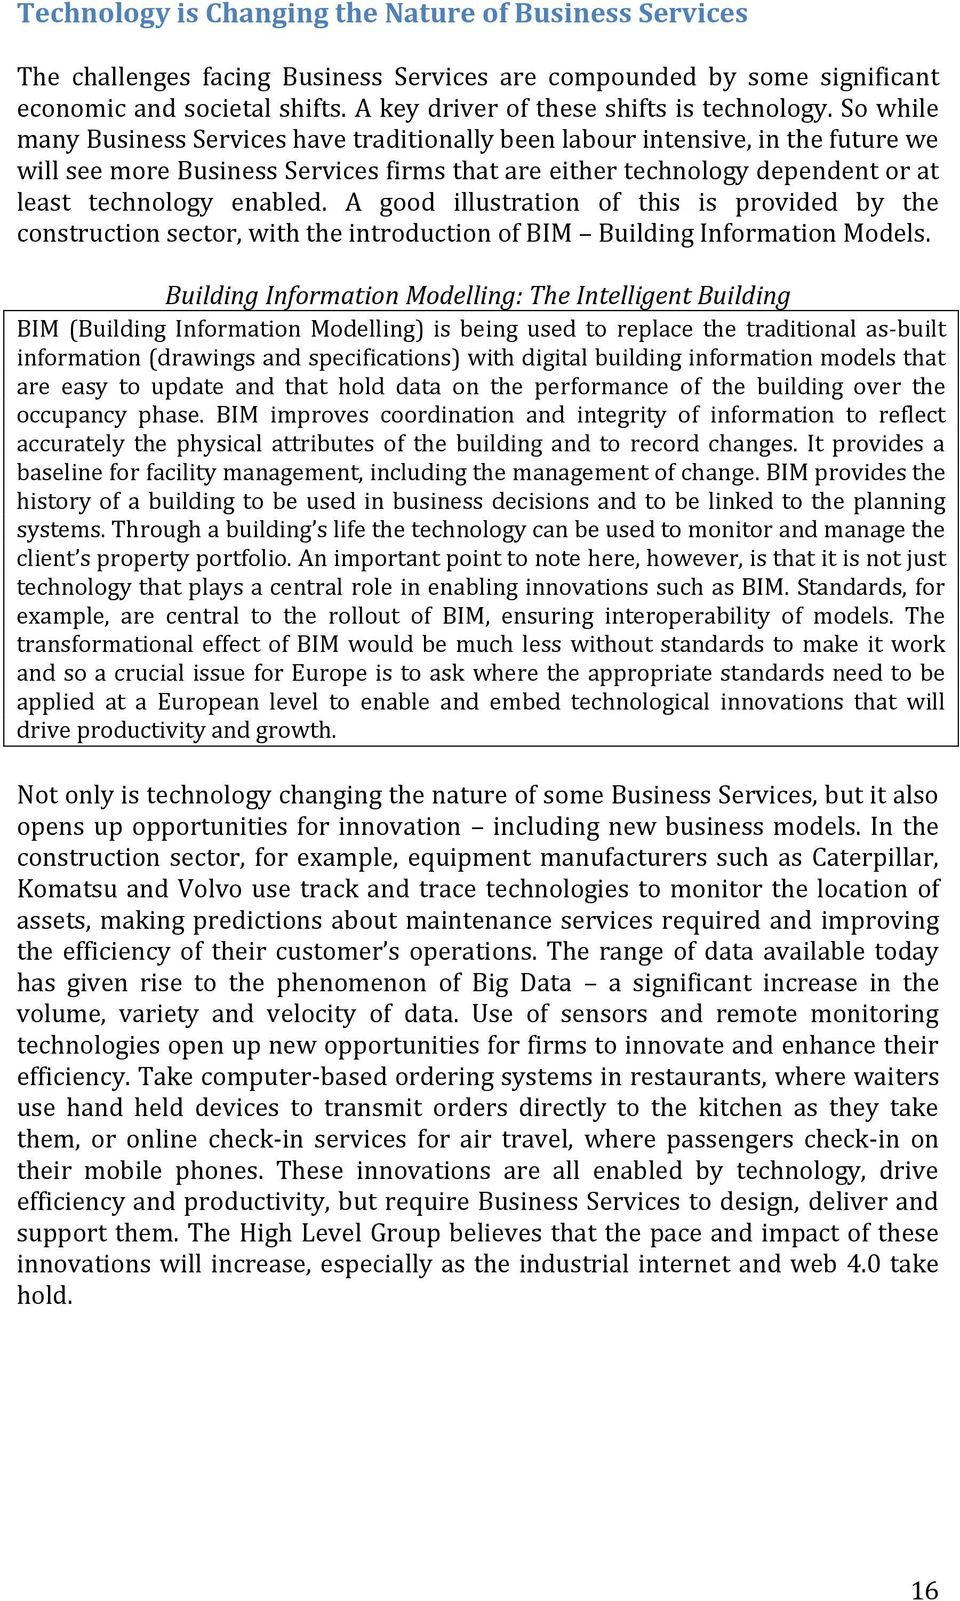 So while many Business Services have traditionally been labour intensive, in the future we will see more Business Services firms that are either technology dependent or at least technology enabled.